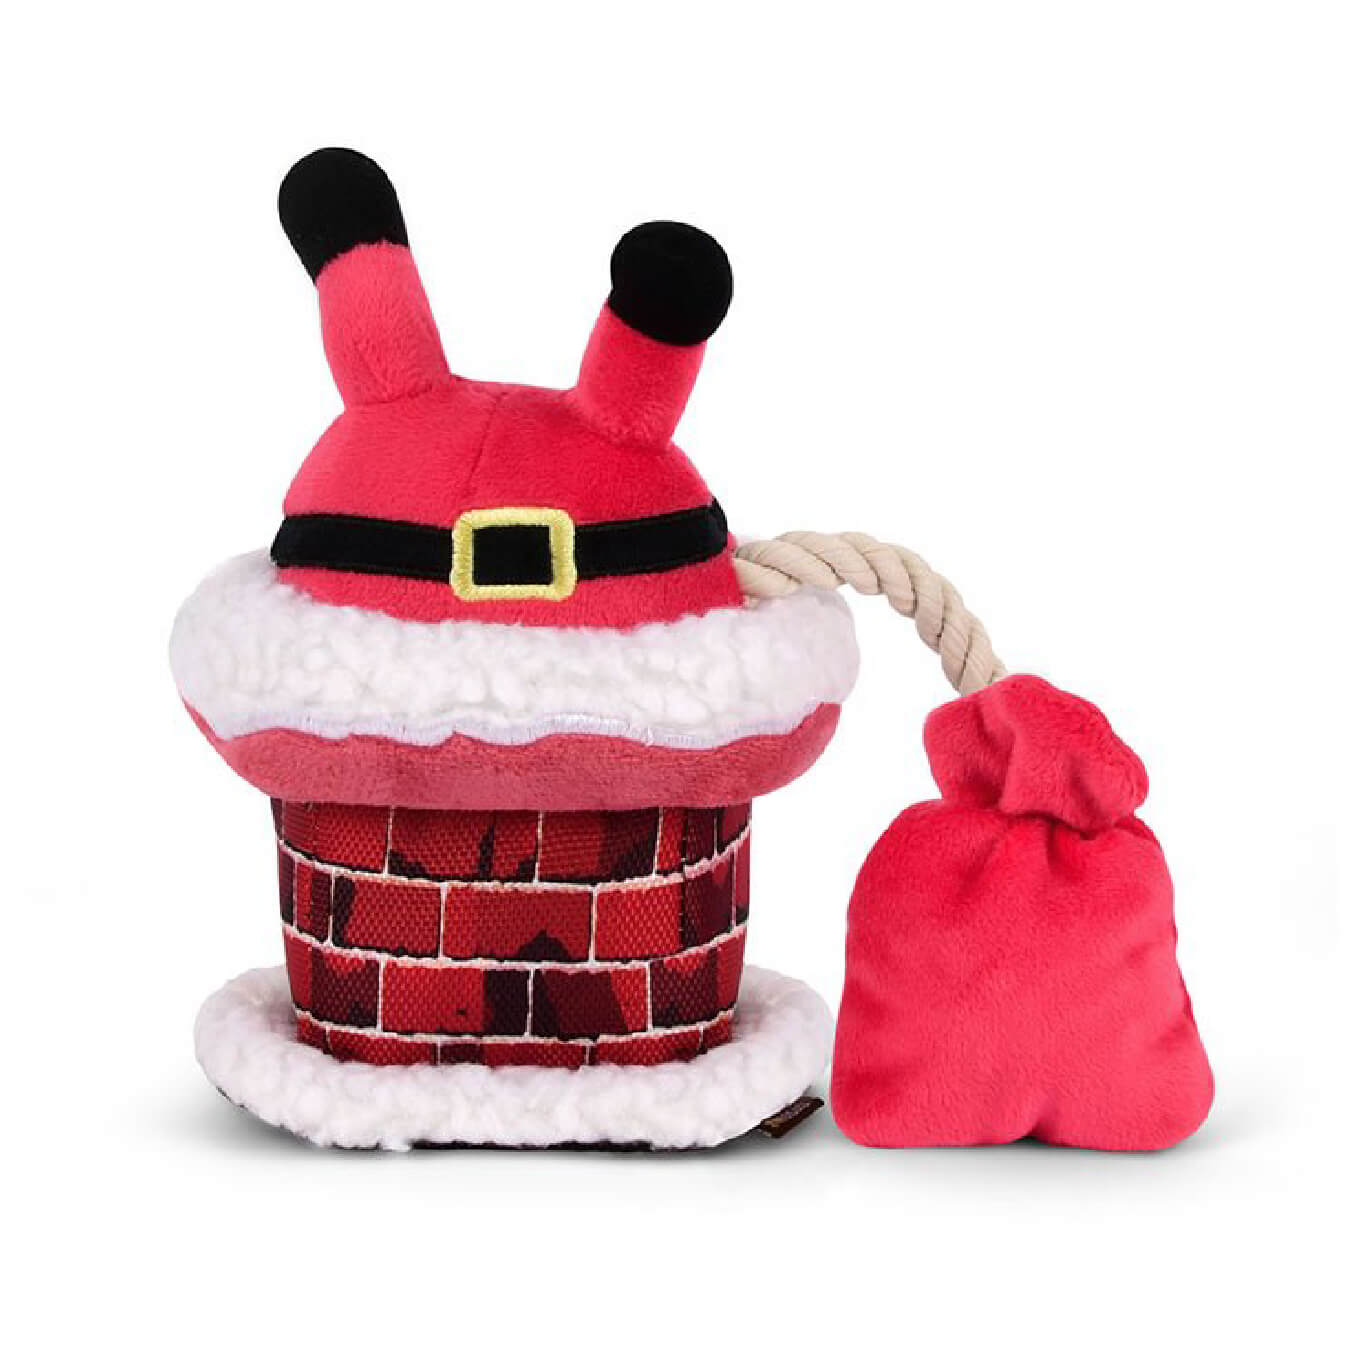 PLAY Merry Woofmas Santa Claus Toy - christmas, Dogs, New, P.L.A.Y., Toys - Vanillapup - Online Pet Shop